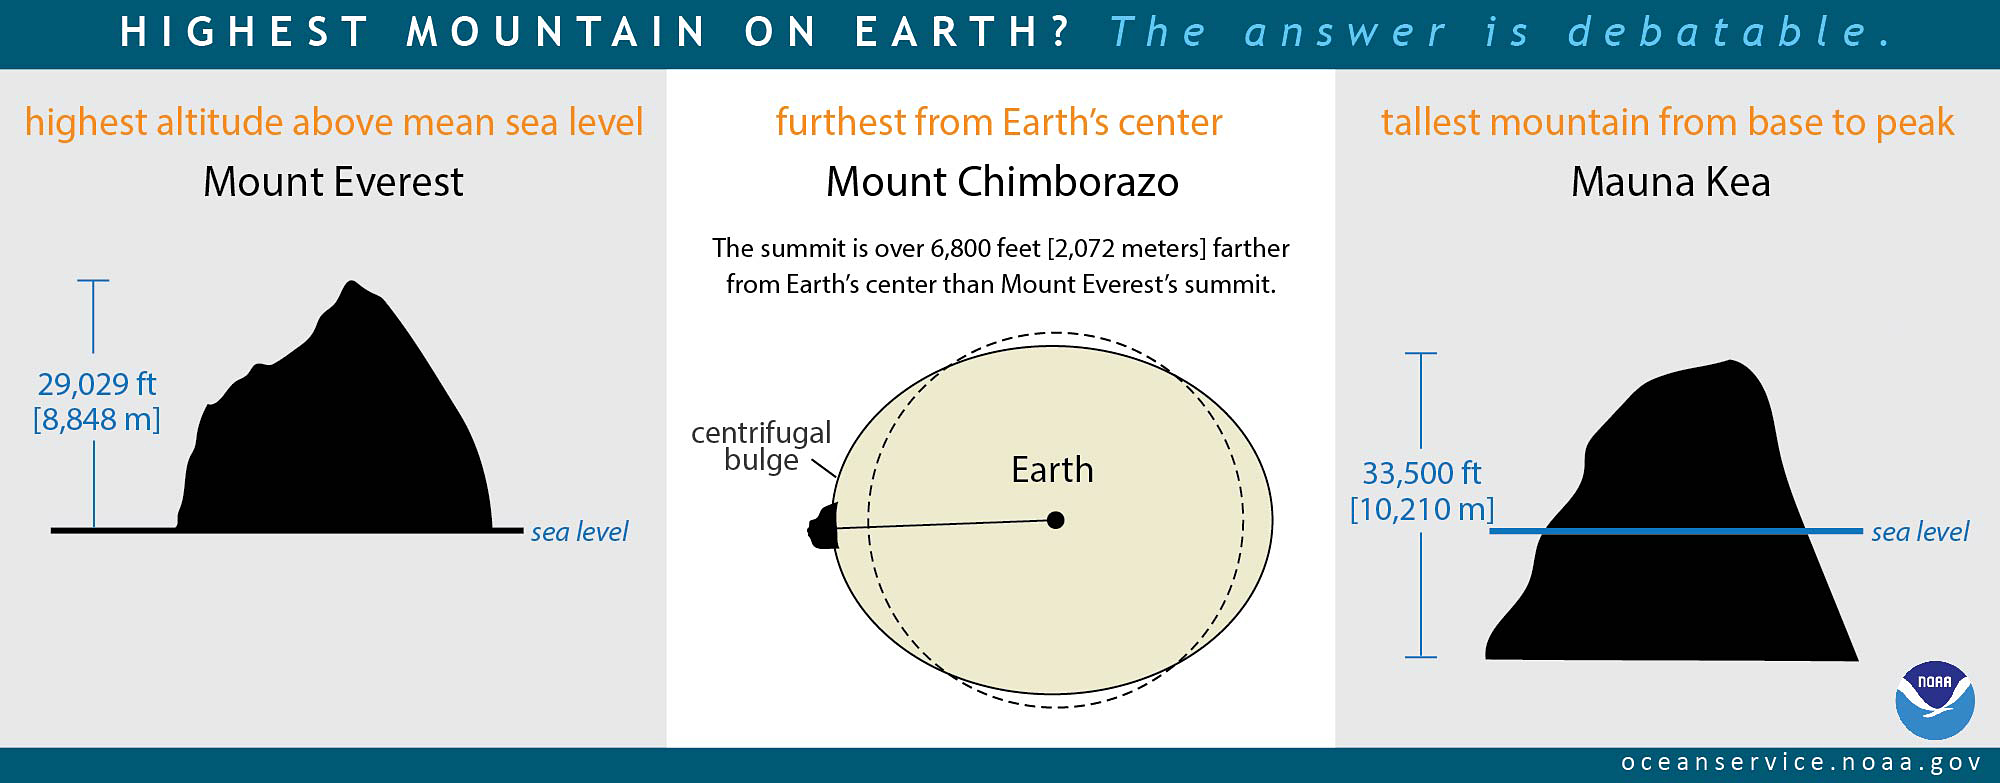 What Is The Highest Point On Earth As Measured From Earths Center - What's the elevation at my location